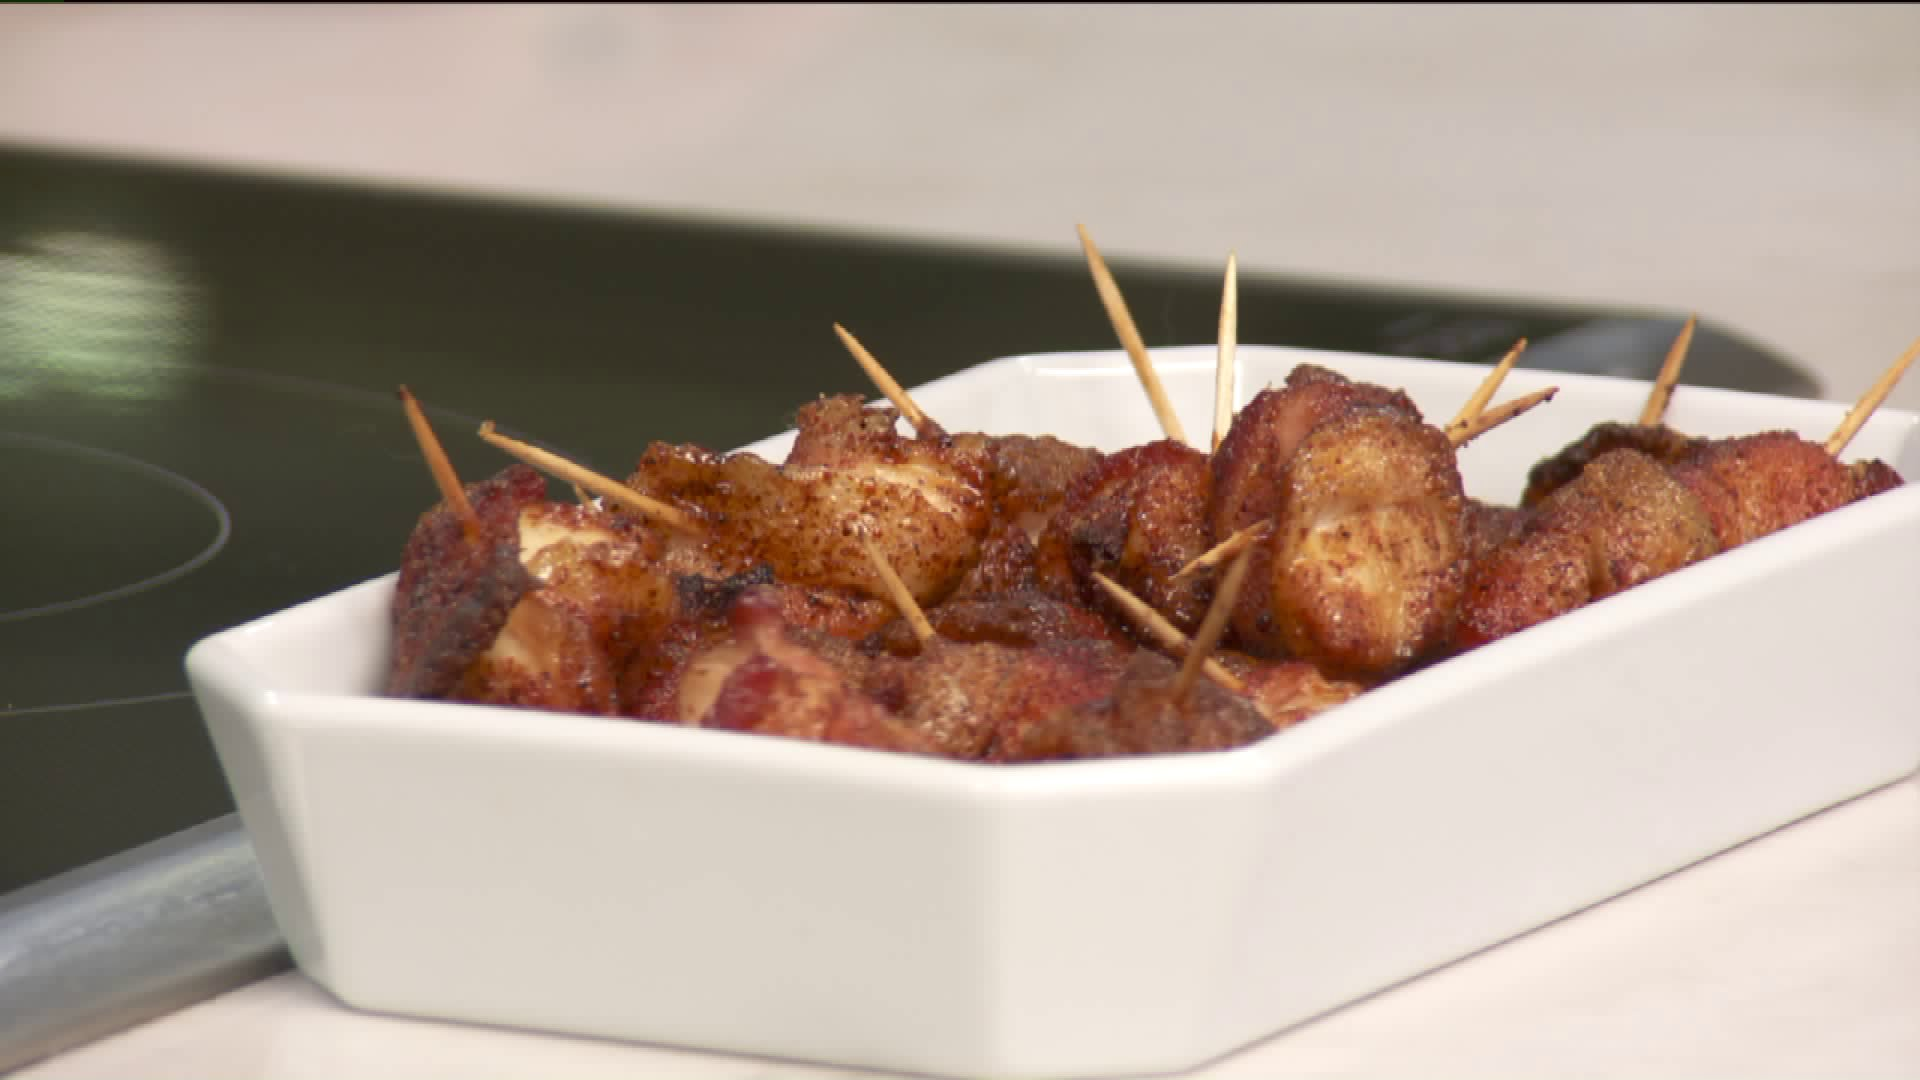 How To Make Bacon-Wrapped Chicken Bites